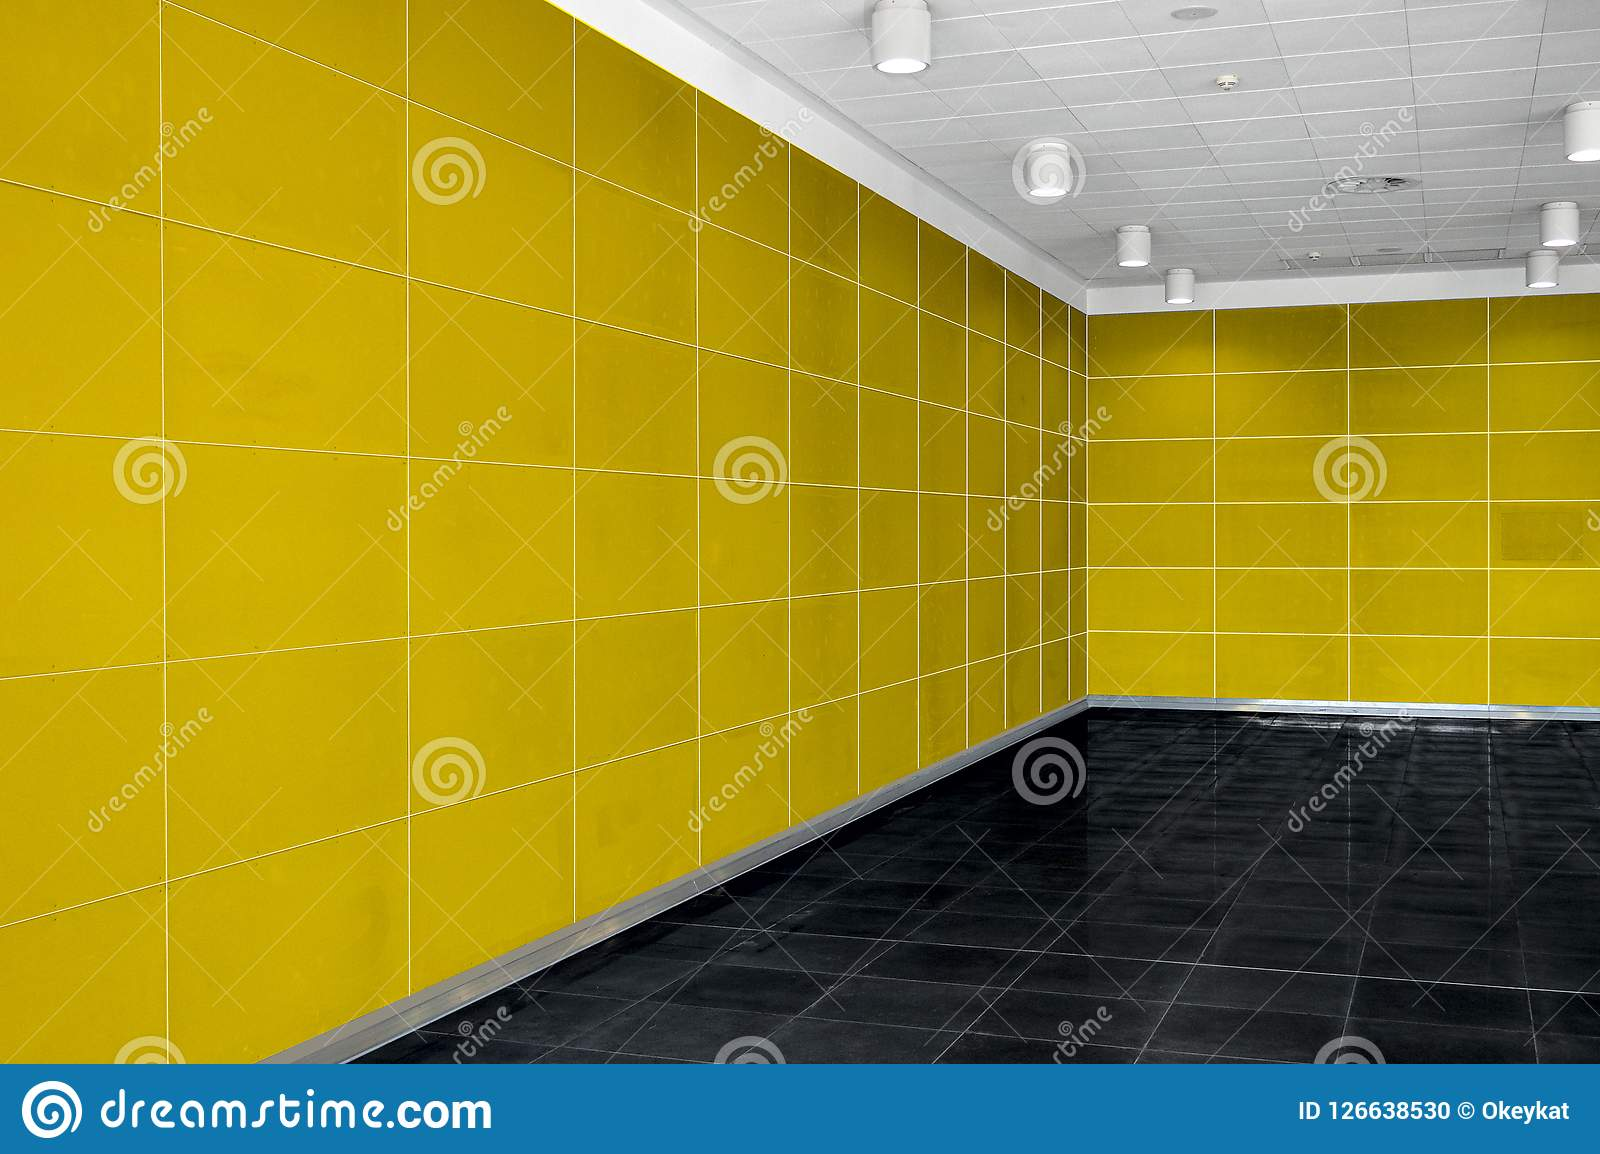 Big empty room interior with bright yellow wall, whire ceiling a